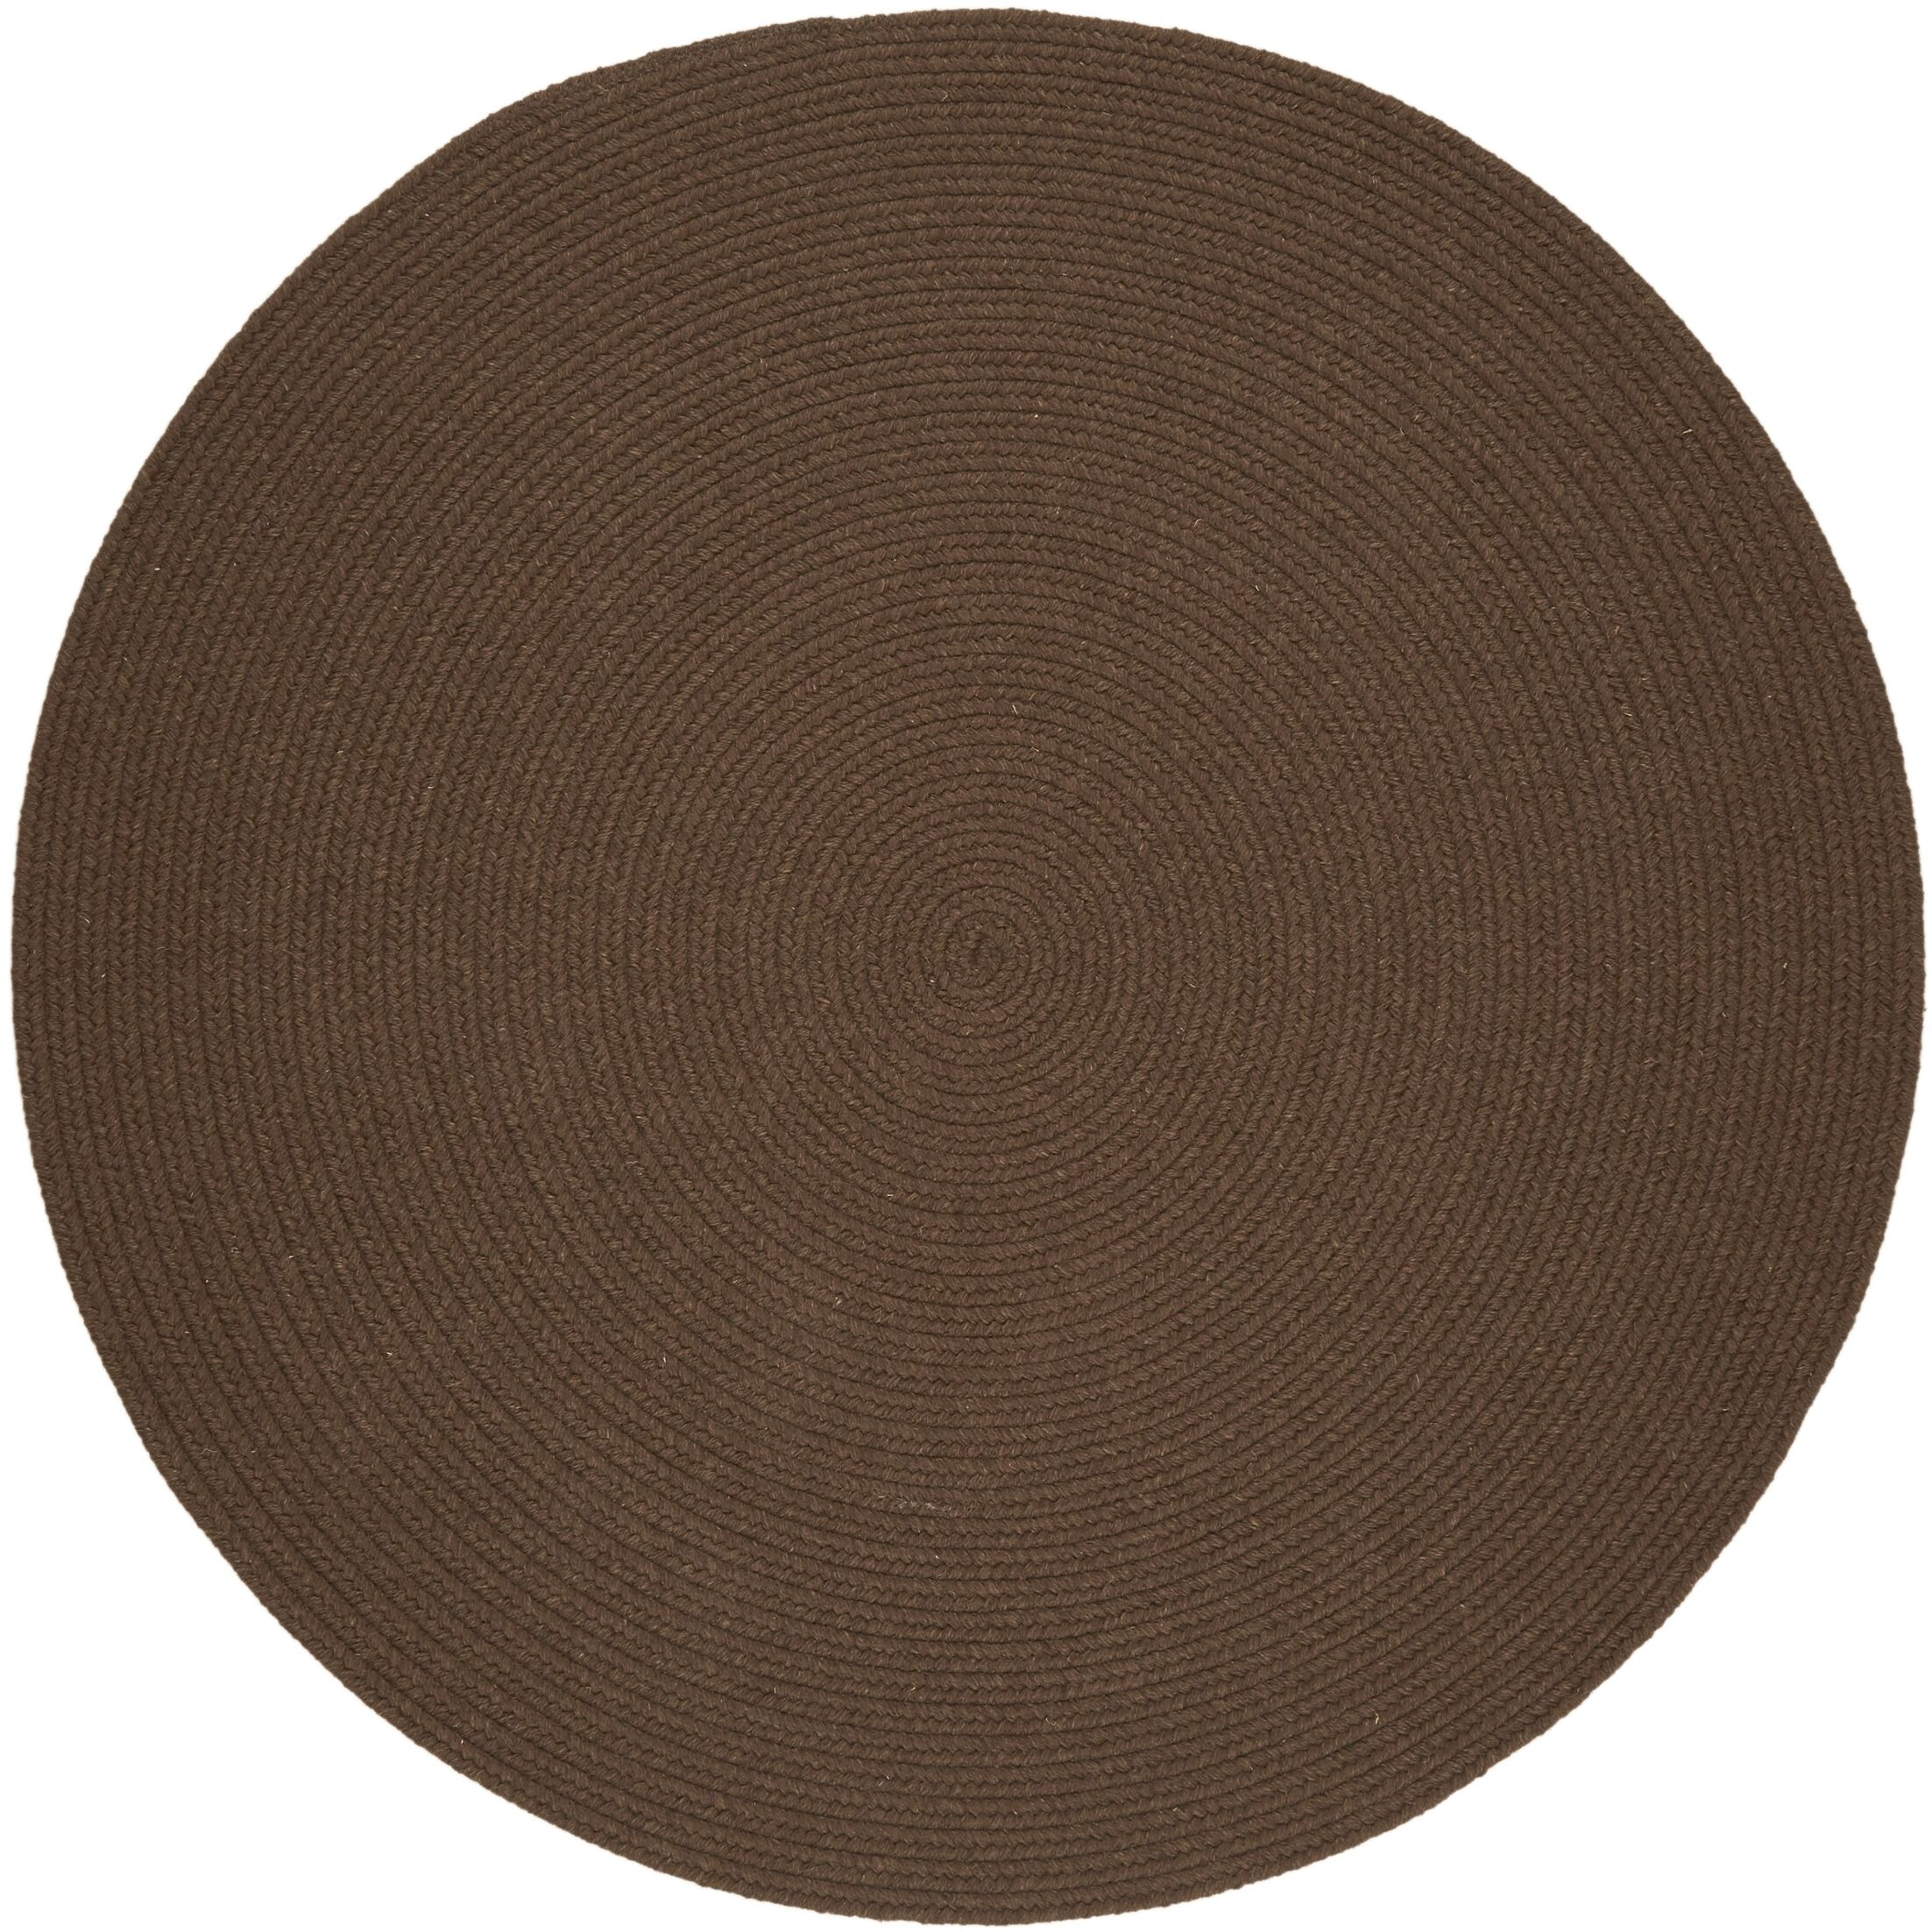 Handmade Brown Area Rug Rug Size: Round 10'